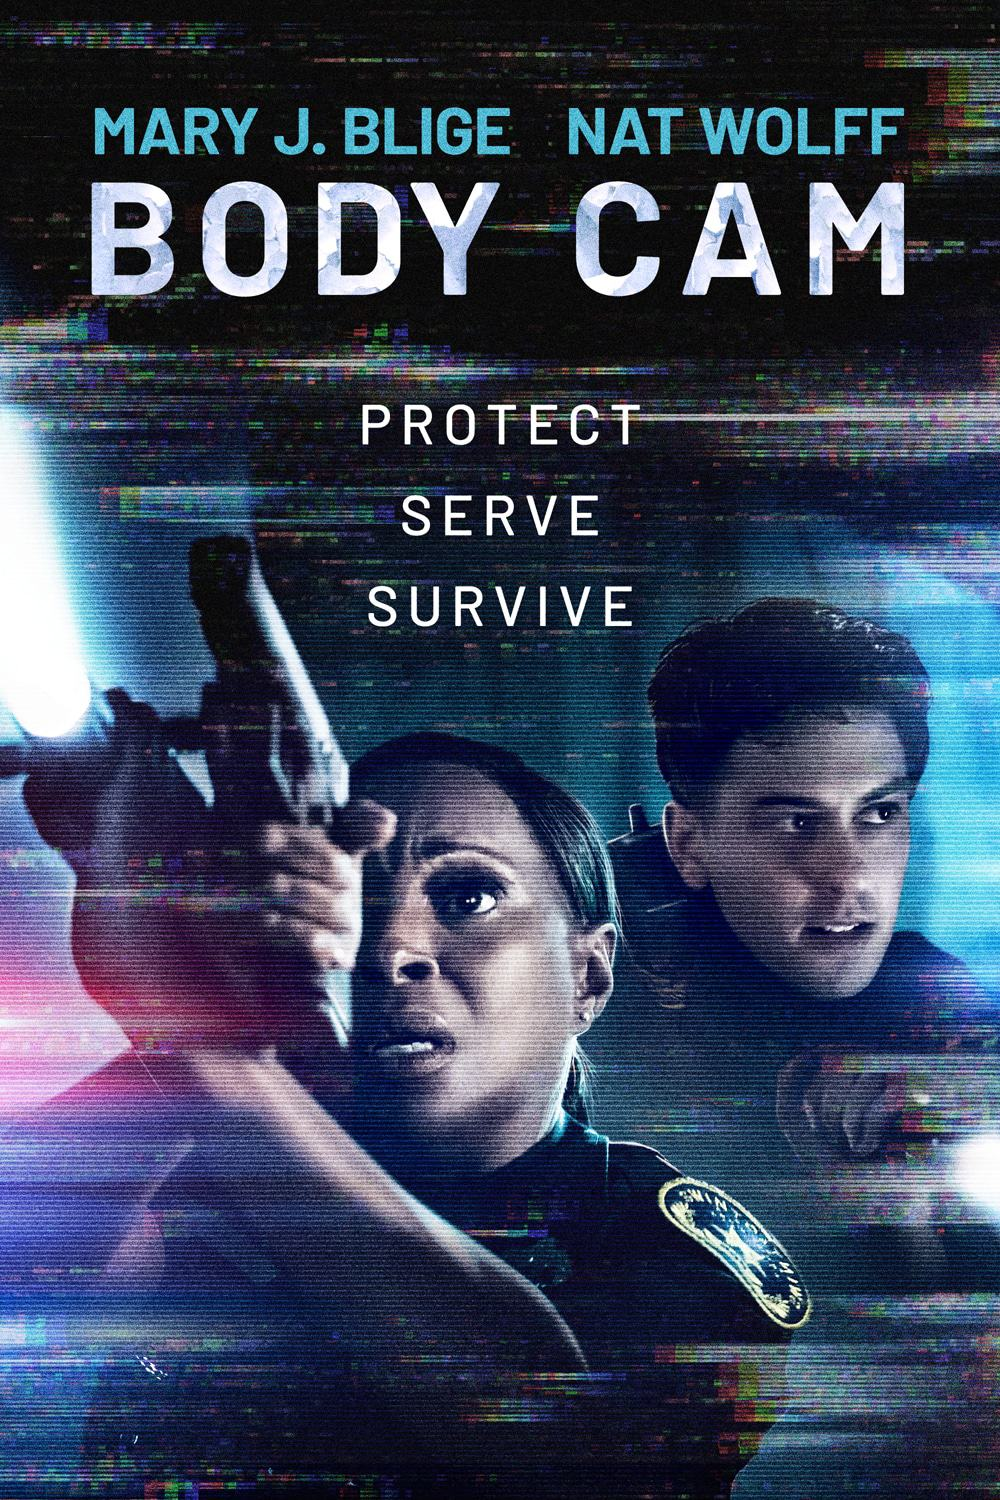 The Body Cam poster featuring Mary J. Blige and Nat Wolff